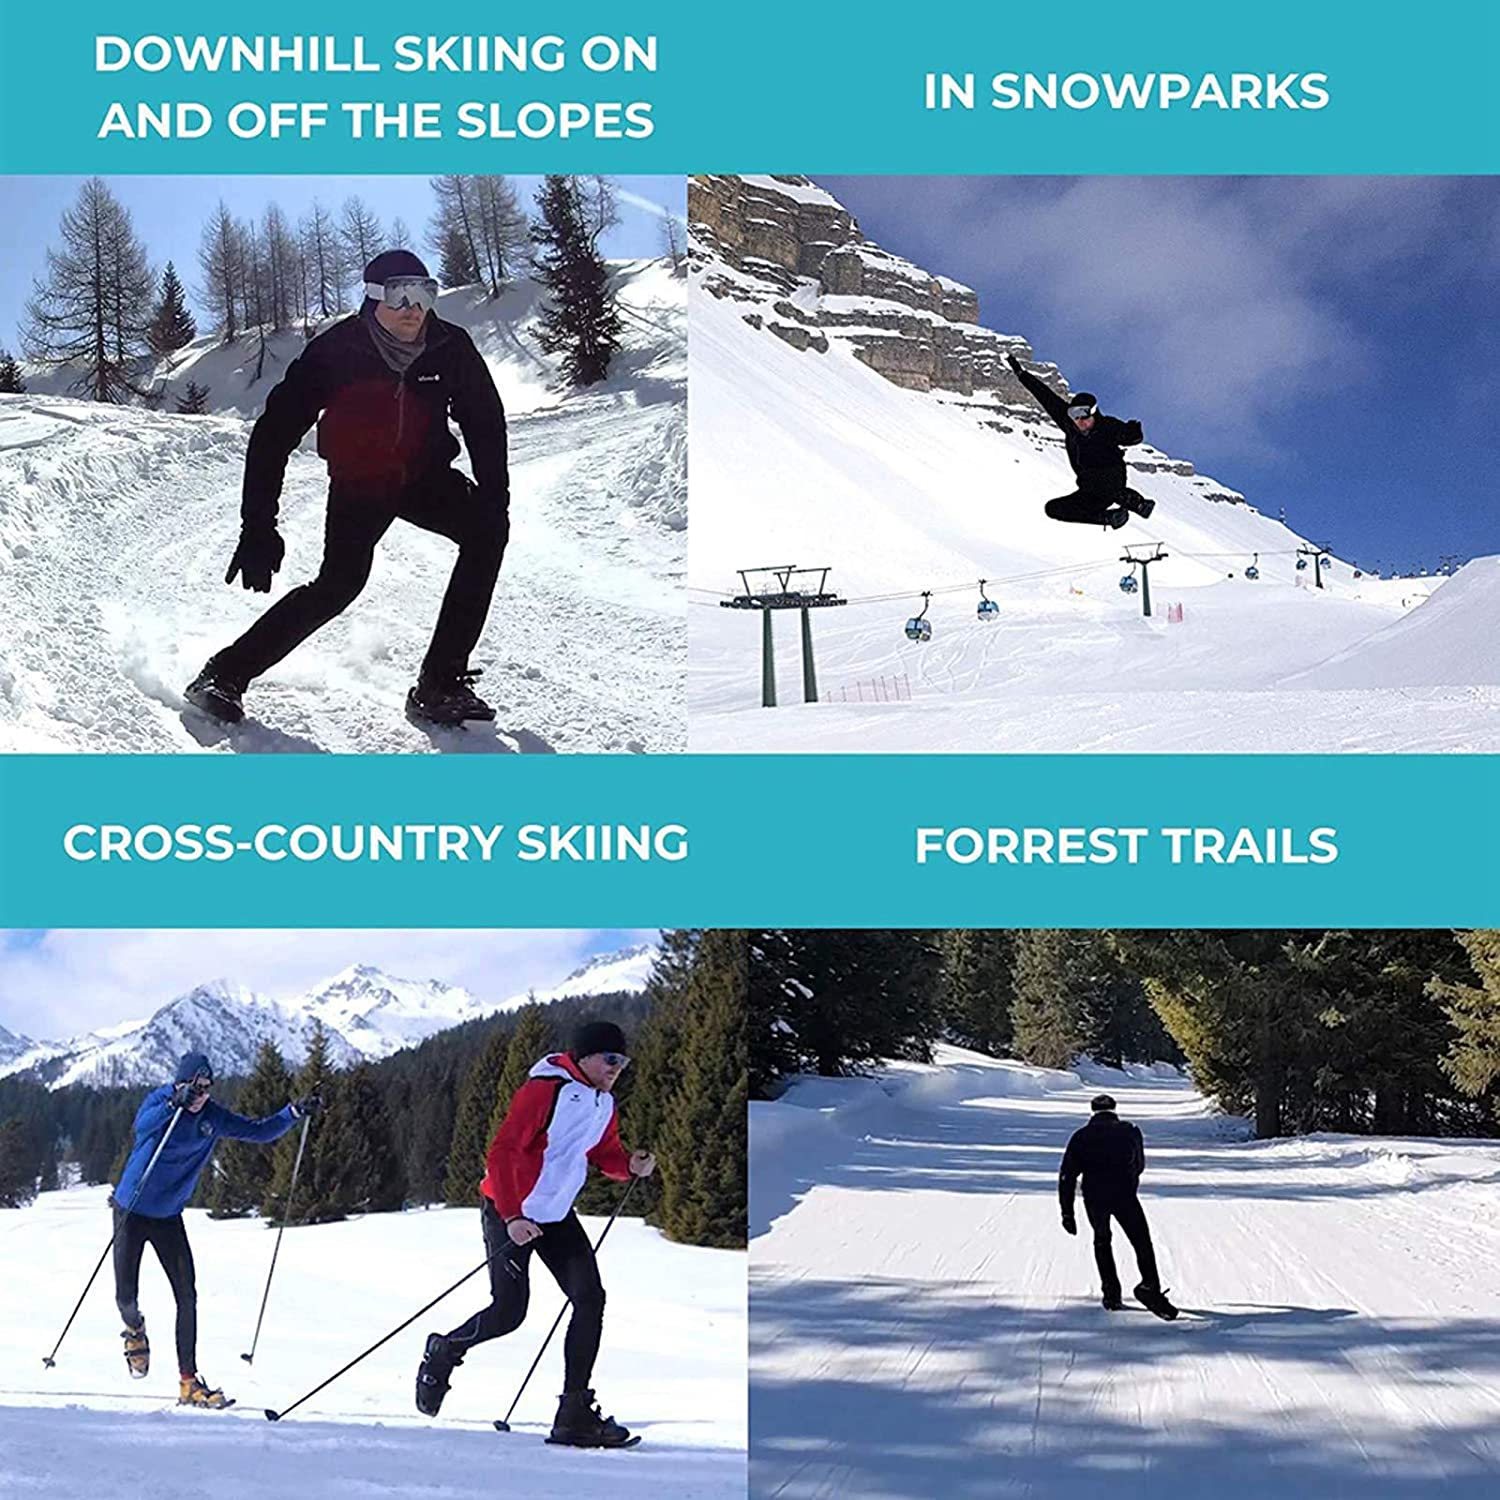 ZAHNG Outdoor Ski Mini Snow Shoe 15.1 Snowshoes for Men and Women Adjustable Snowboard Snow Sled Shoes Anti-Slip Foot Panels Winter Sports Skiing Equipment for Outdoor Enthusiasts